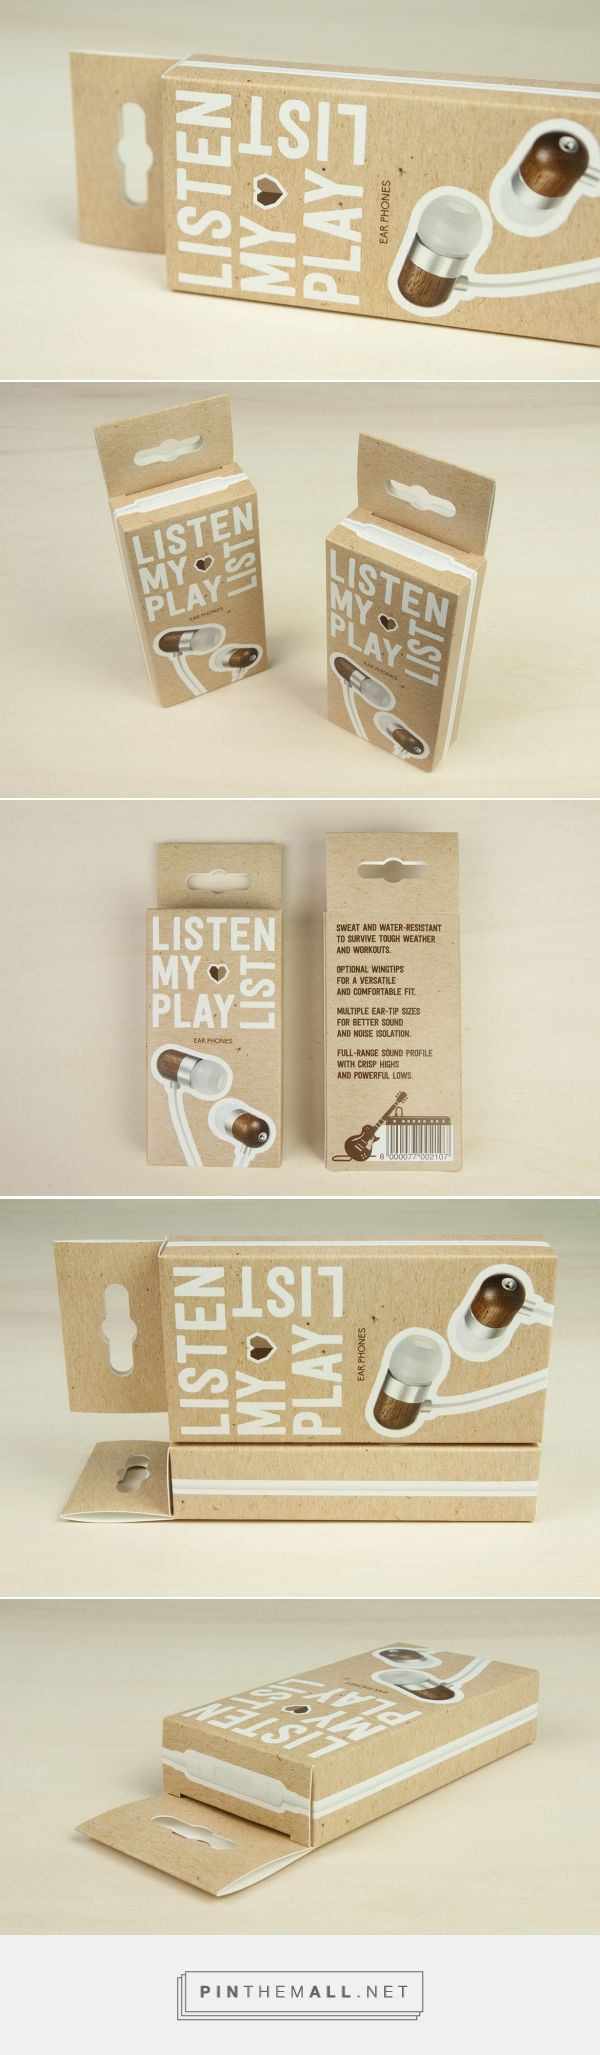 Audio - Here it is a #packaging for #earphones realised choosing the hanging box model available on #Packly with custom sizes and personalised artwork